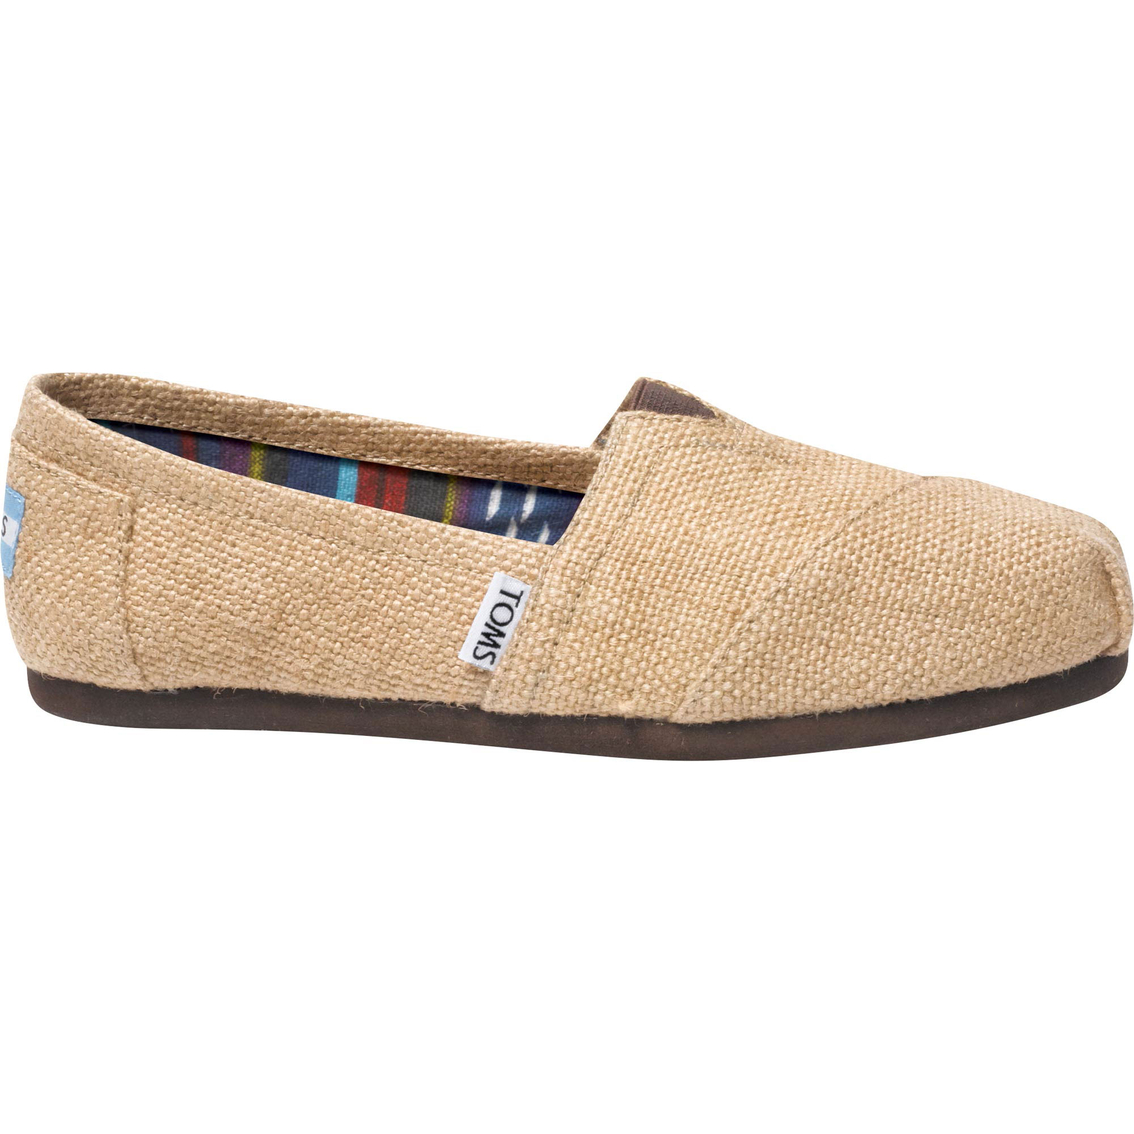 Toms Women University Ash Rope Sole Blue Shoe  Toms OutletCheap Toms Shoes  Online Welcome to Toms OutletToms outlet provide high quality toms shoesbest